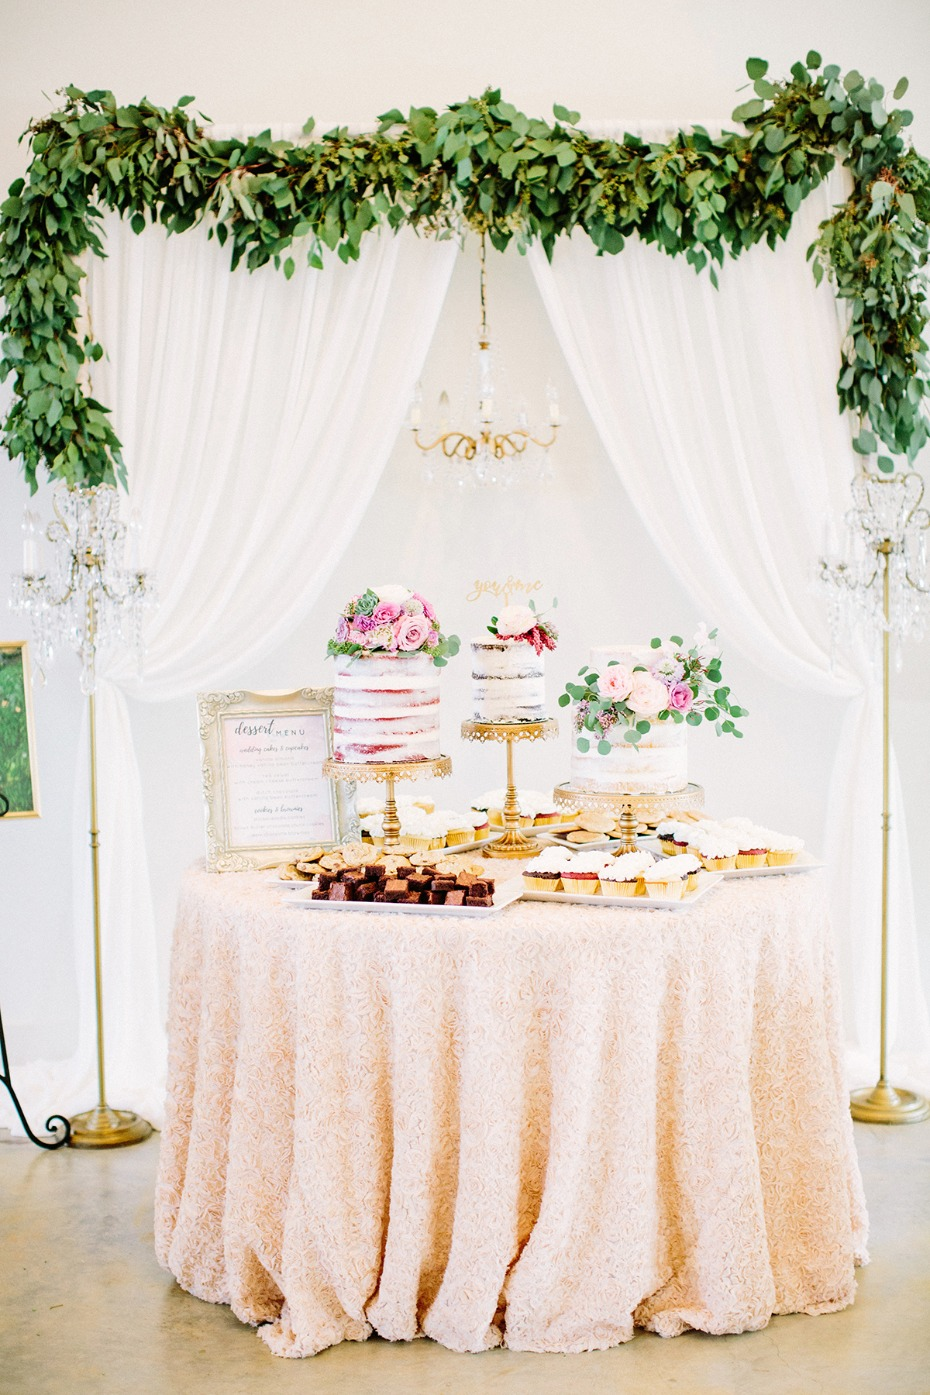 Sweetest cake table